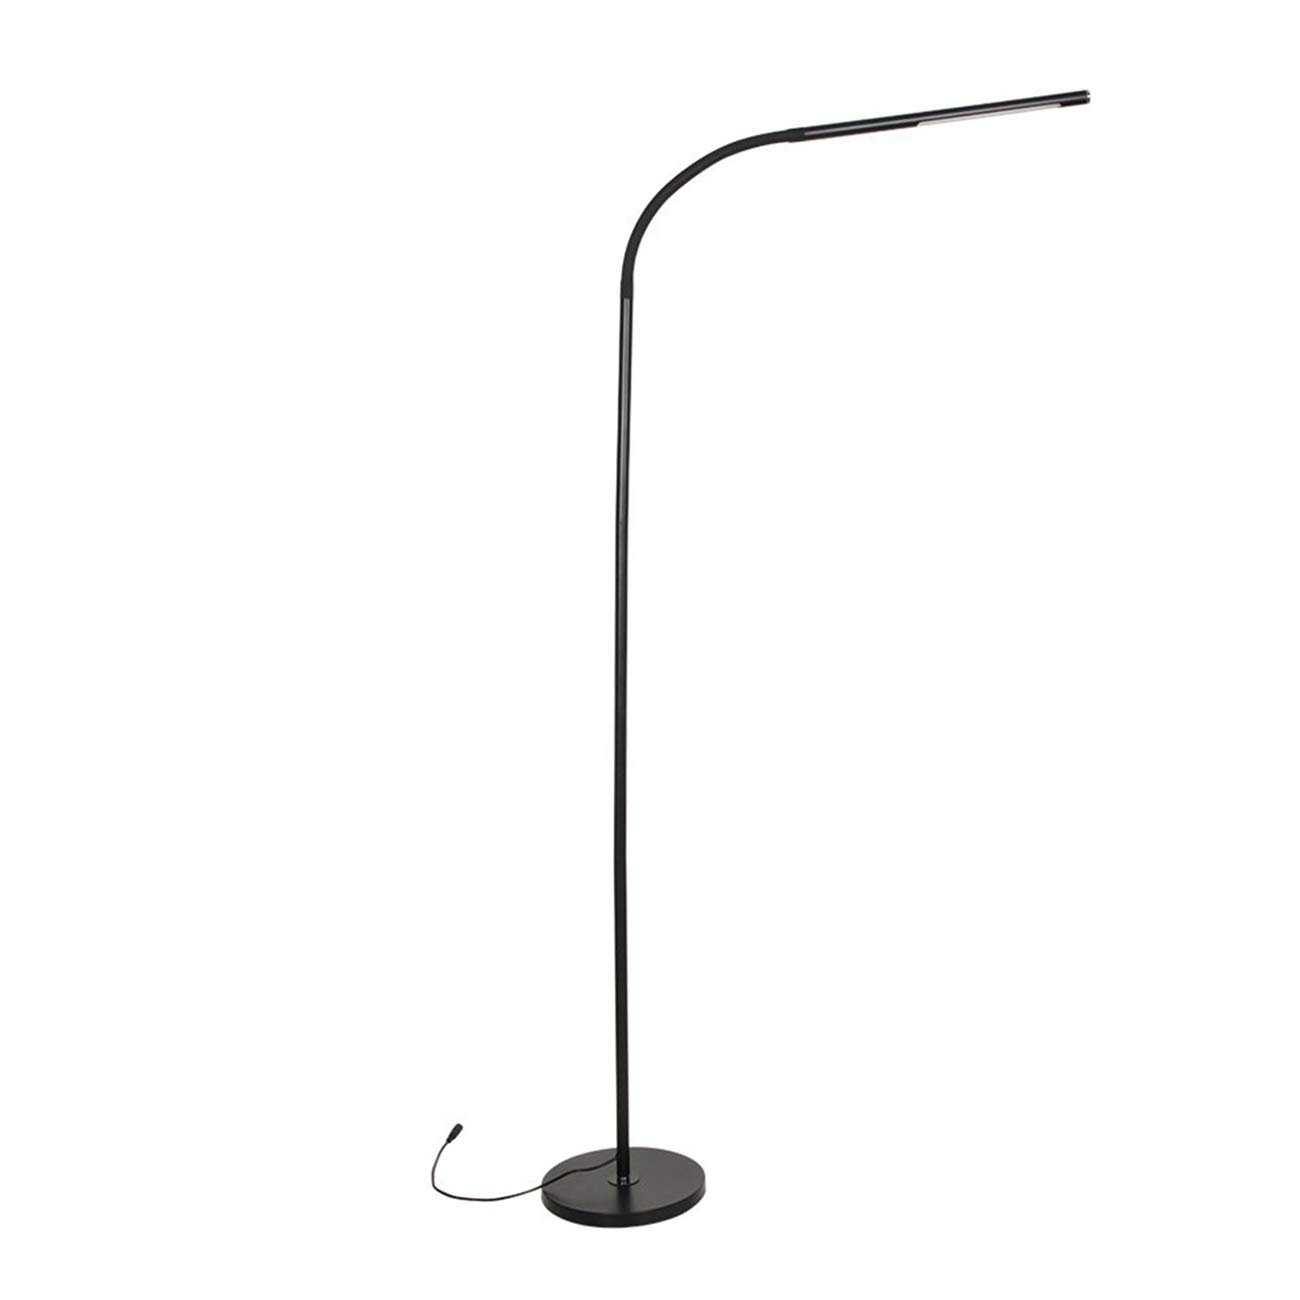 LED Reading Floor Lamp – 4 Color Modes 6W Low Impact Lighting, Low Consumption Brightness Stepless Dimming, with Flexible Gooseneck – Great Reading Floor Light